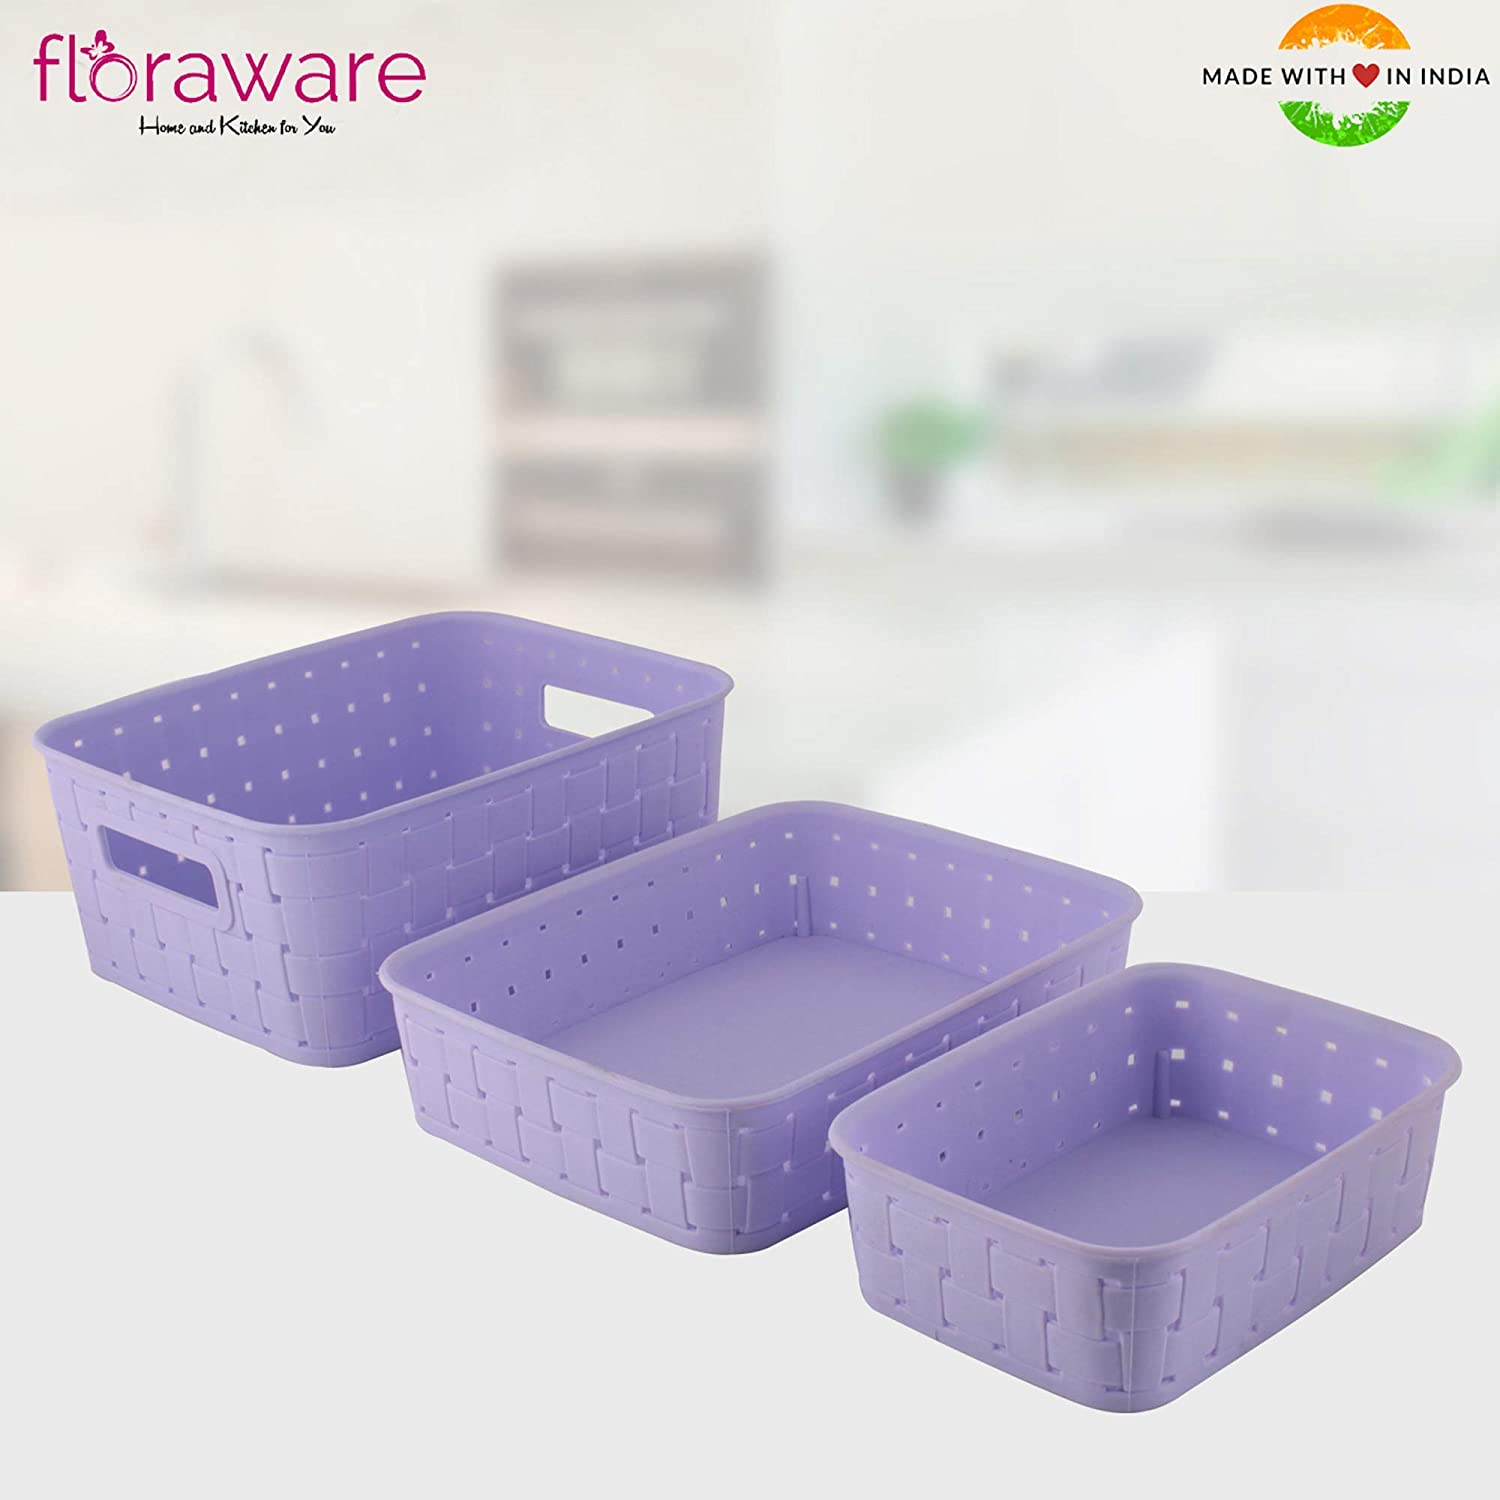 Floraware Smart Baskets for Storage, Set of 3